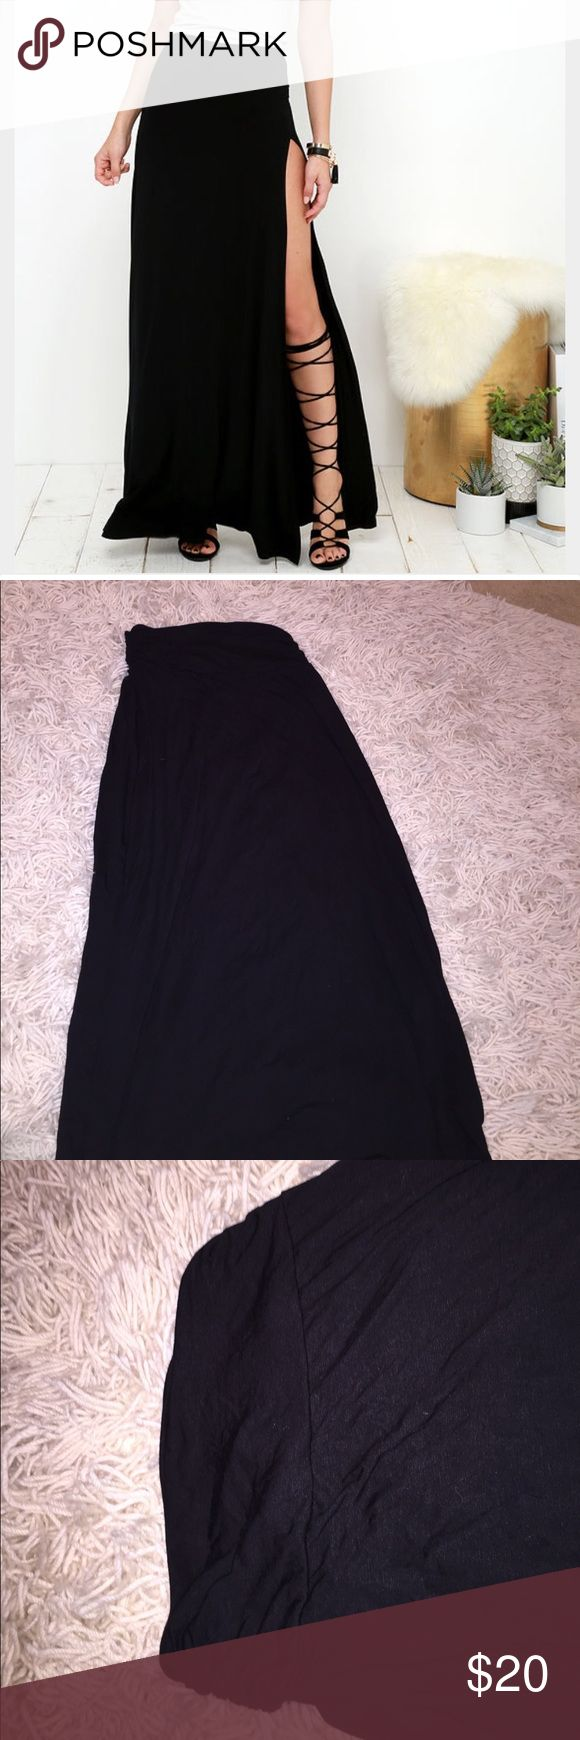 Black Maxi Skirt!! NWOT Never worn!! So so soft and adorable! Has a nice waist band! *not Brandy Melville ** Brandy Melville Skirts Maxi